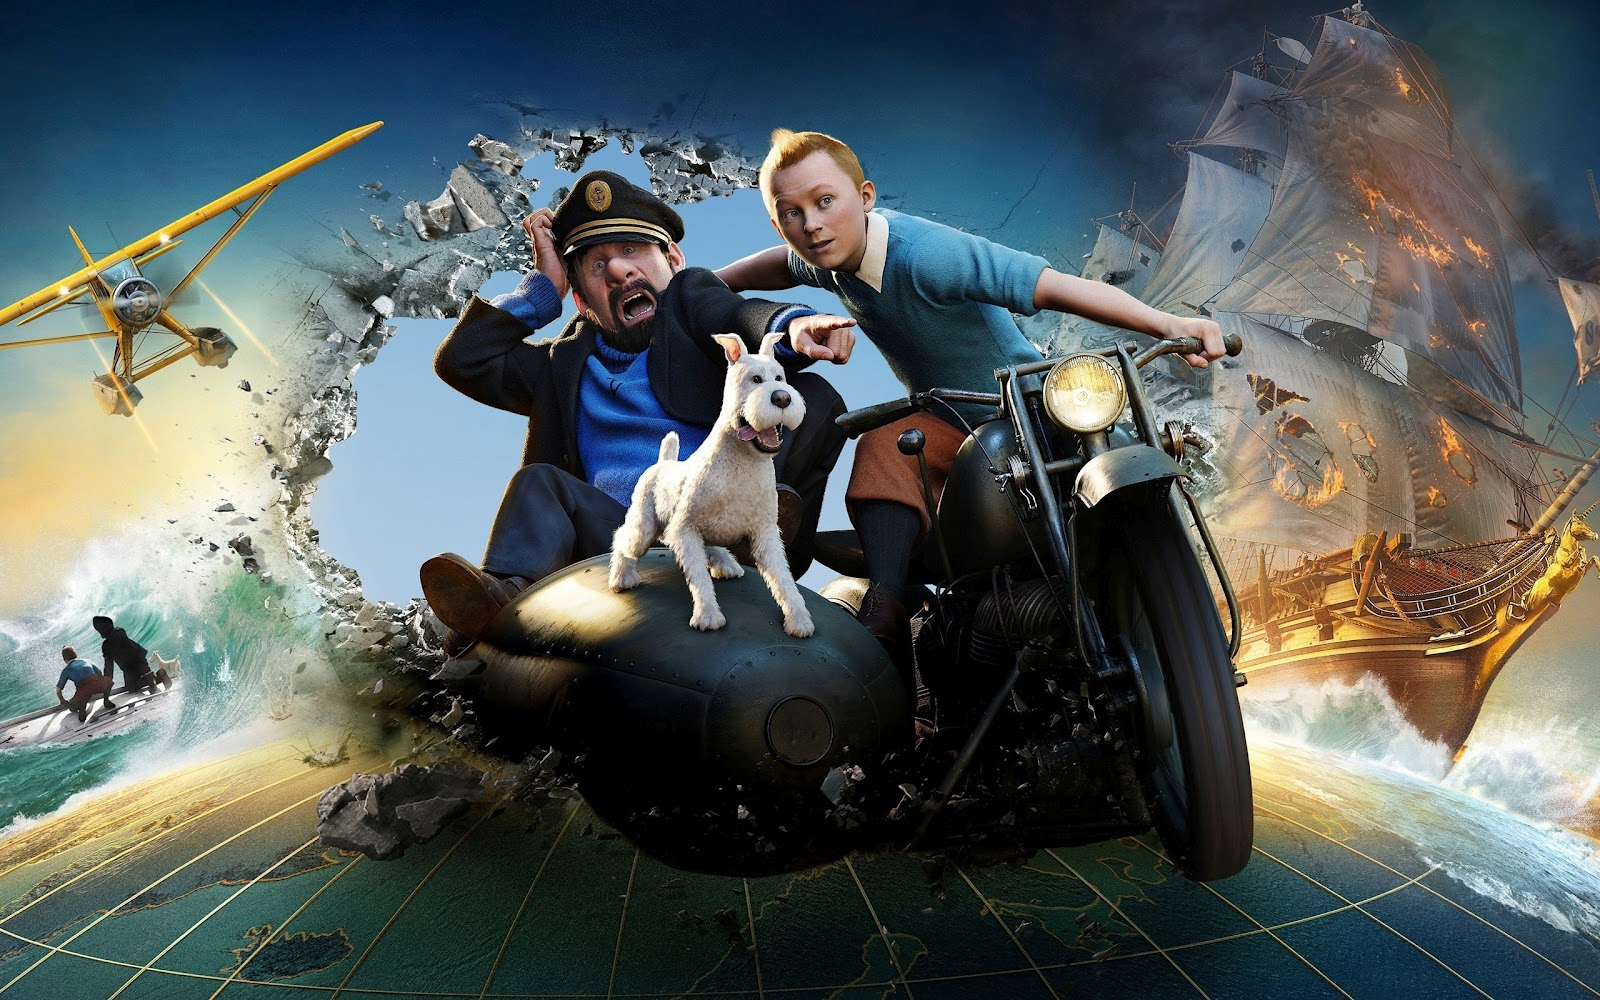 central Wallpaper: The Adventures of Tintin Posters HD Wallpapers